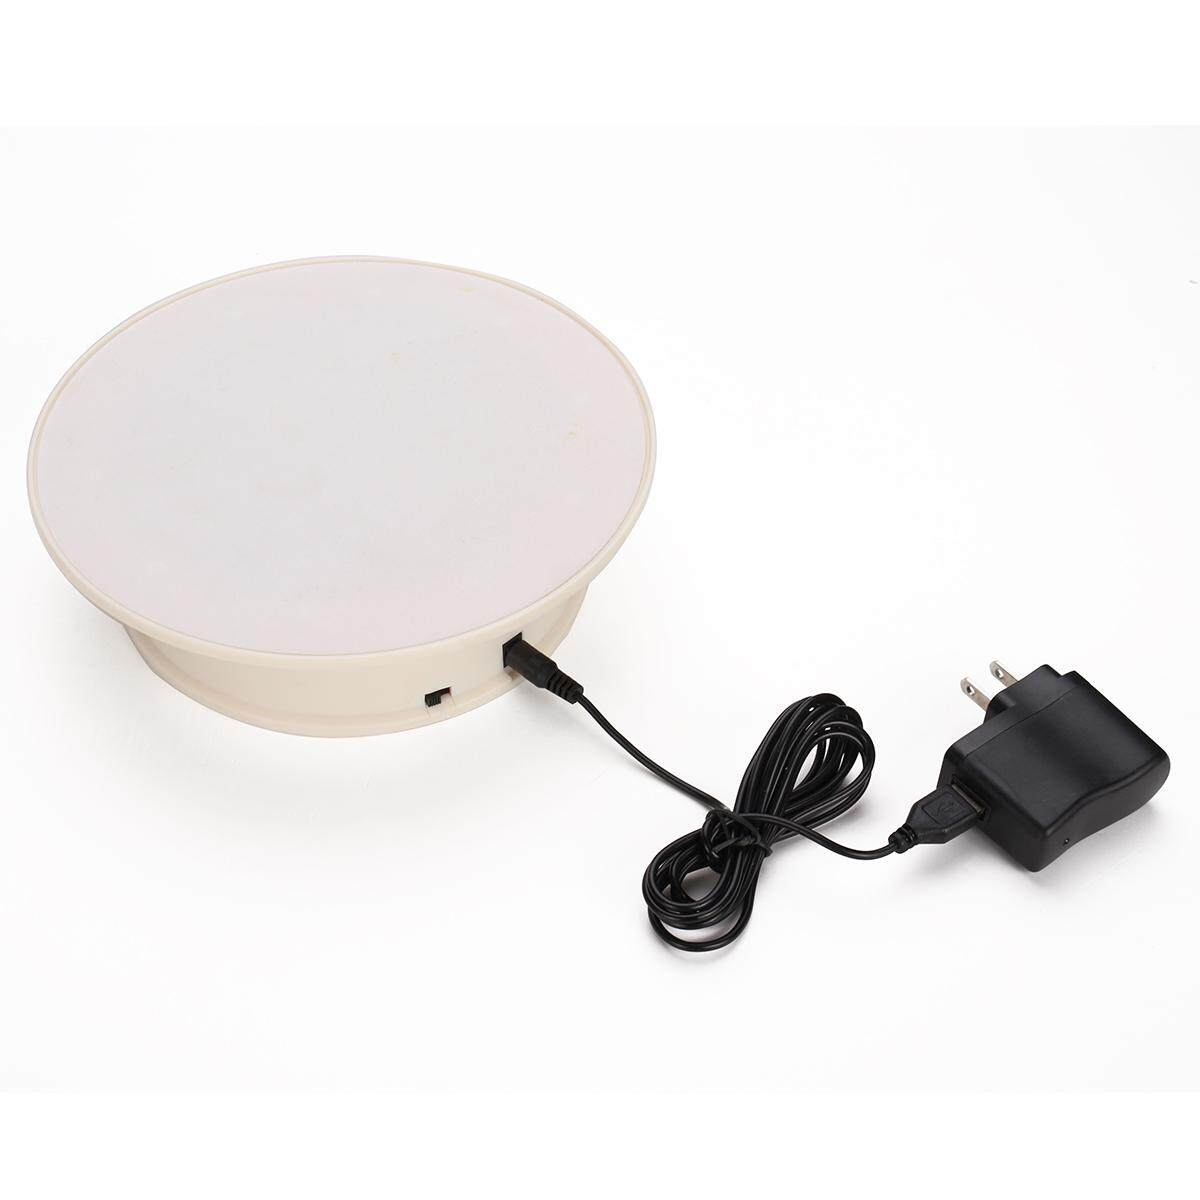 8 White 360° Rotating Anti-slip Turntable Display Stand Power by AC & Battery